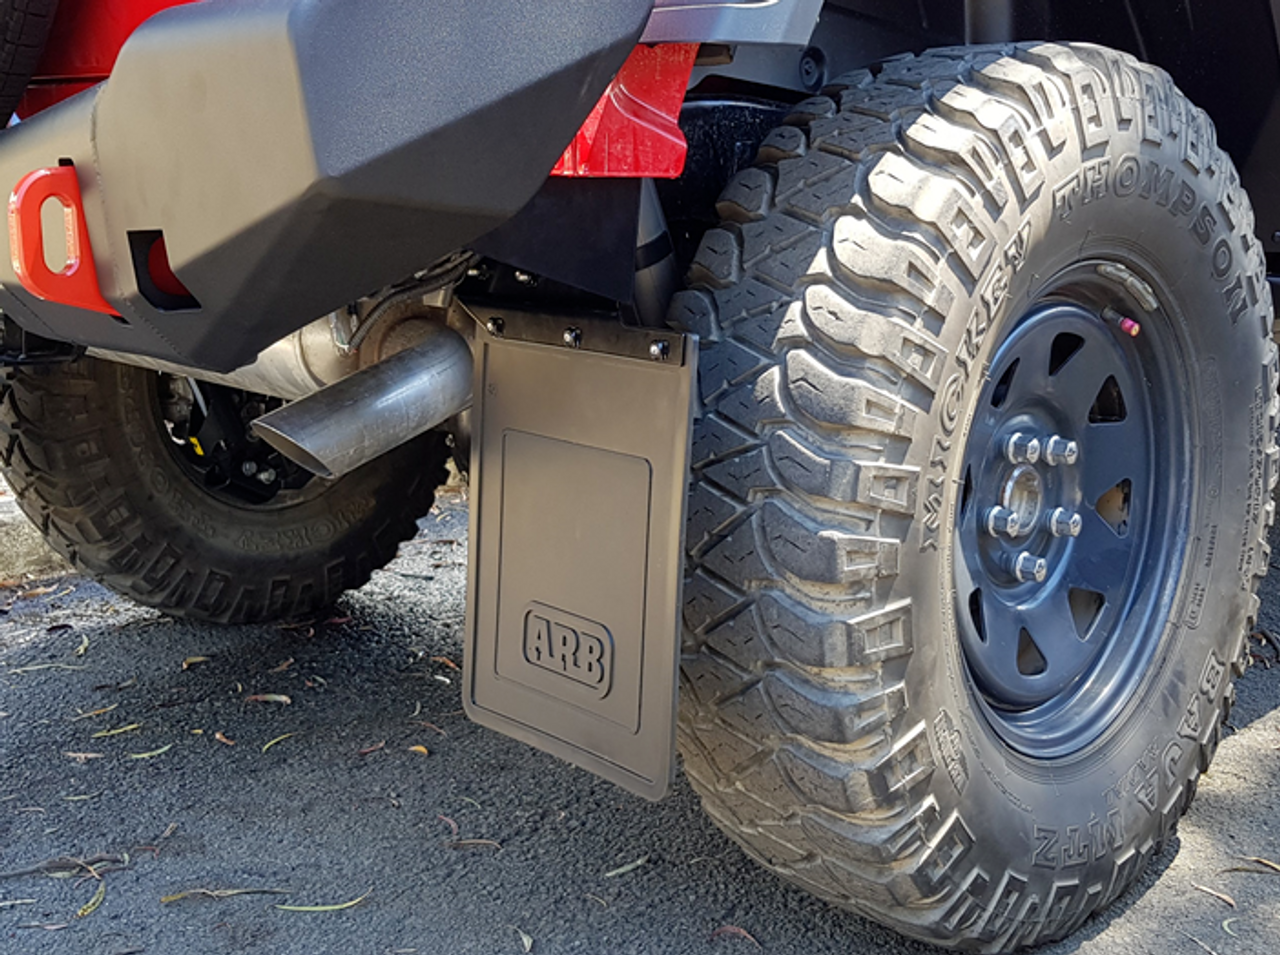 ARB 5750380 Mud Flaps for ARB Rear Bumper for Jeep Wrangler JL 2018+